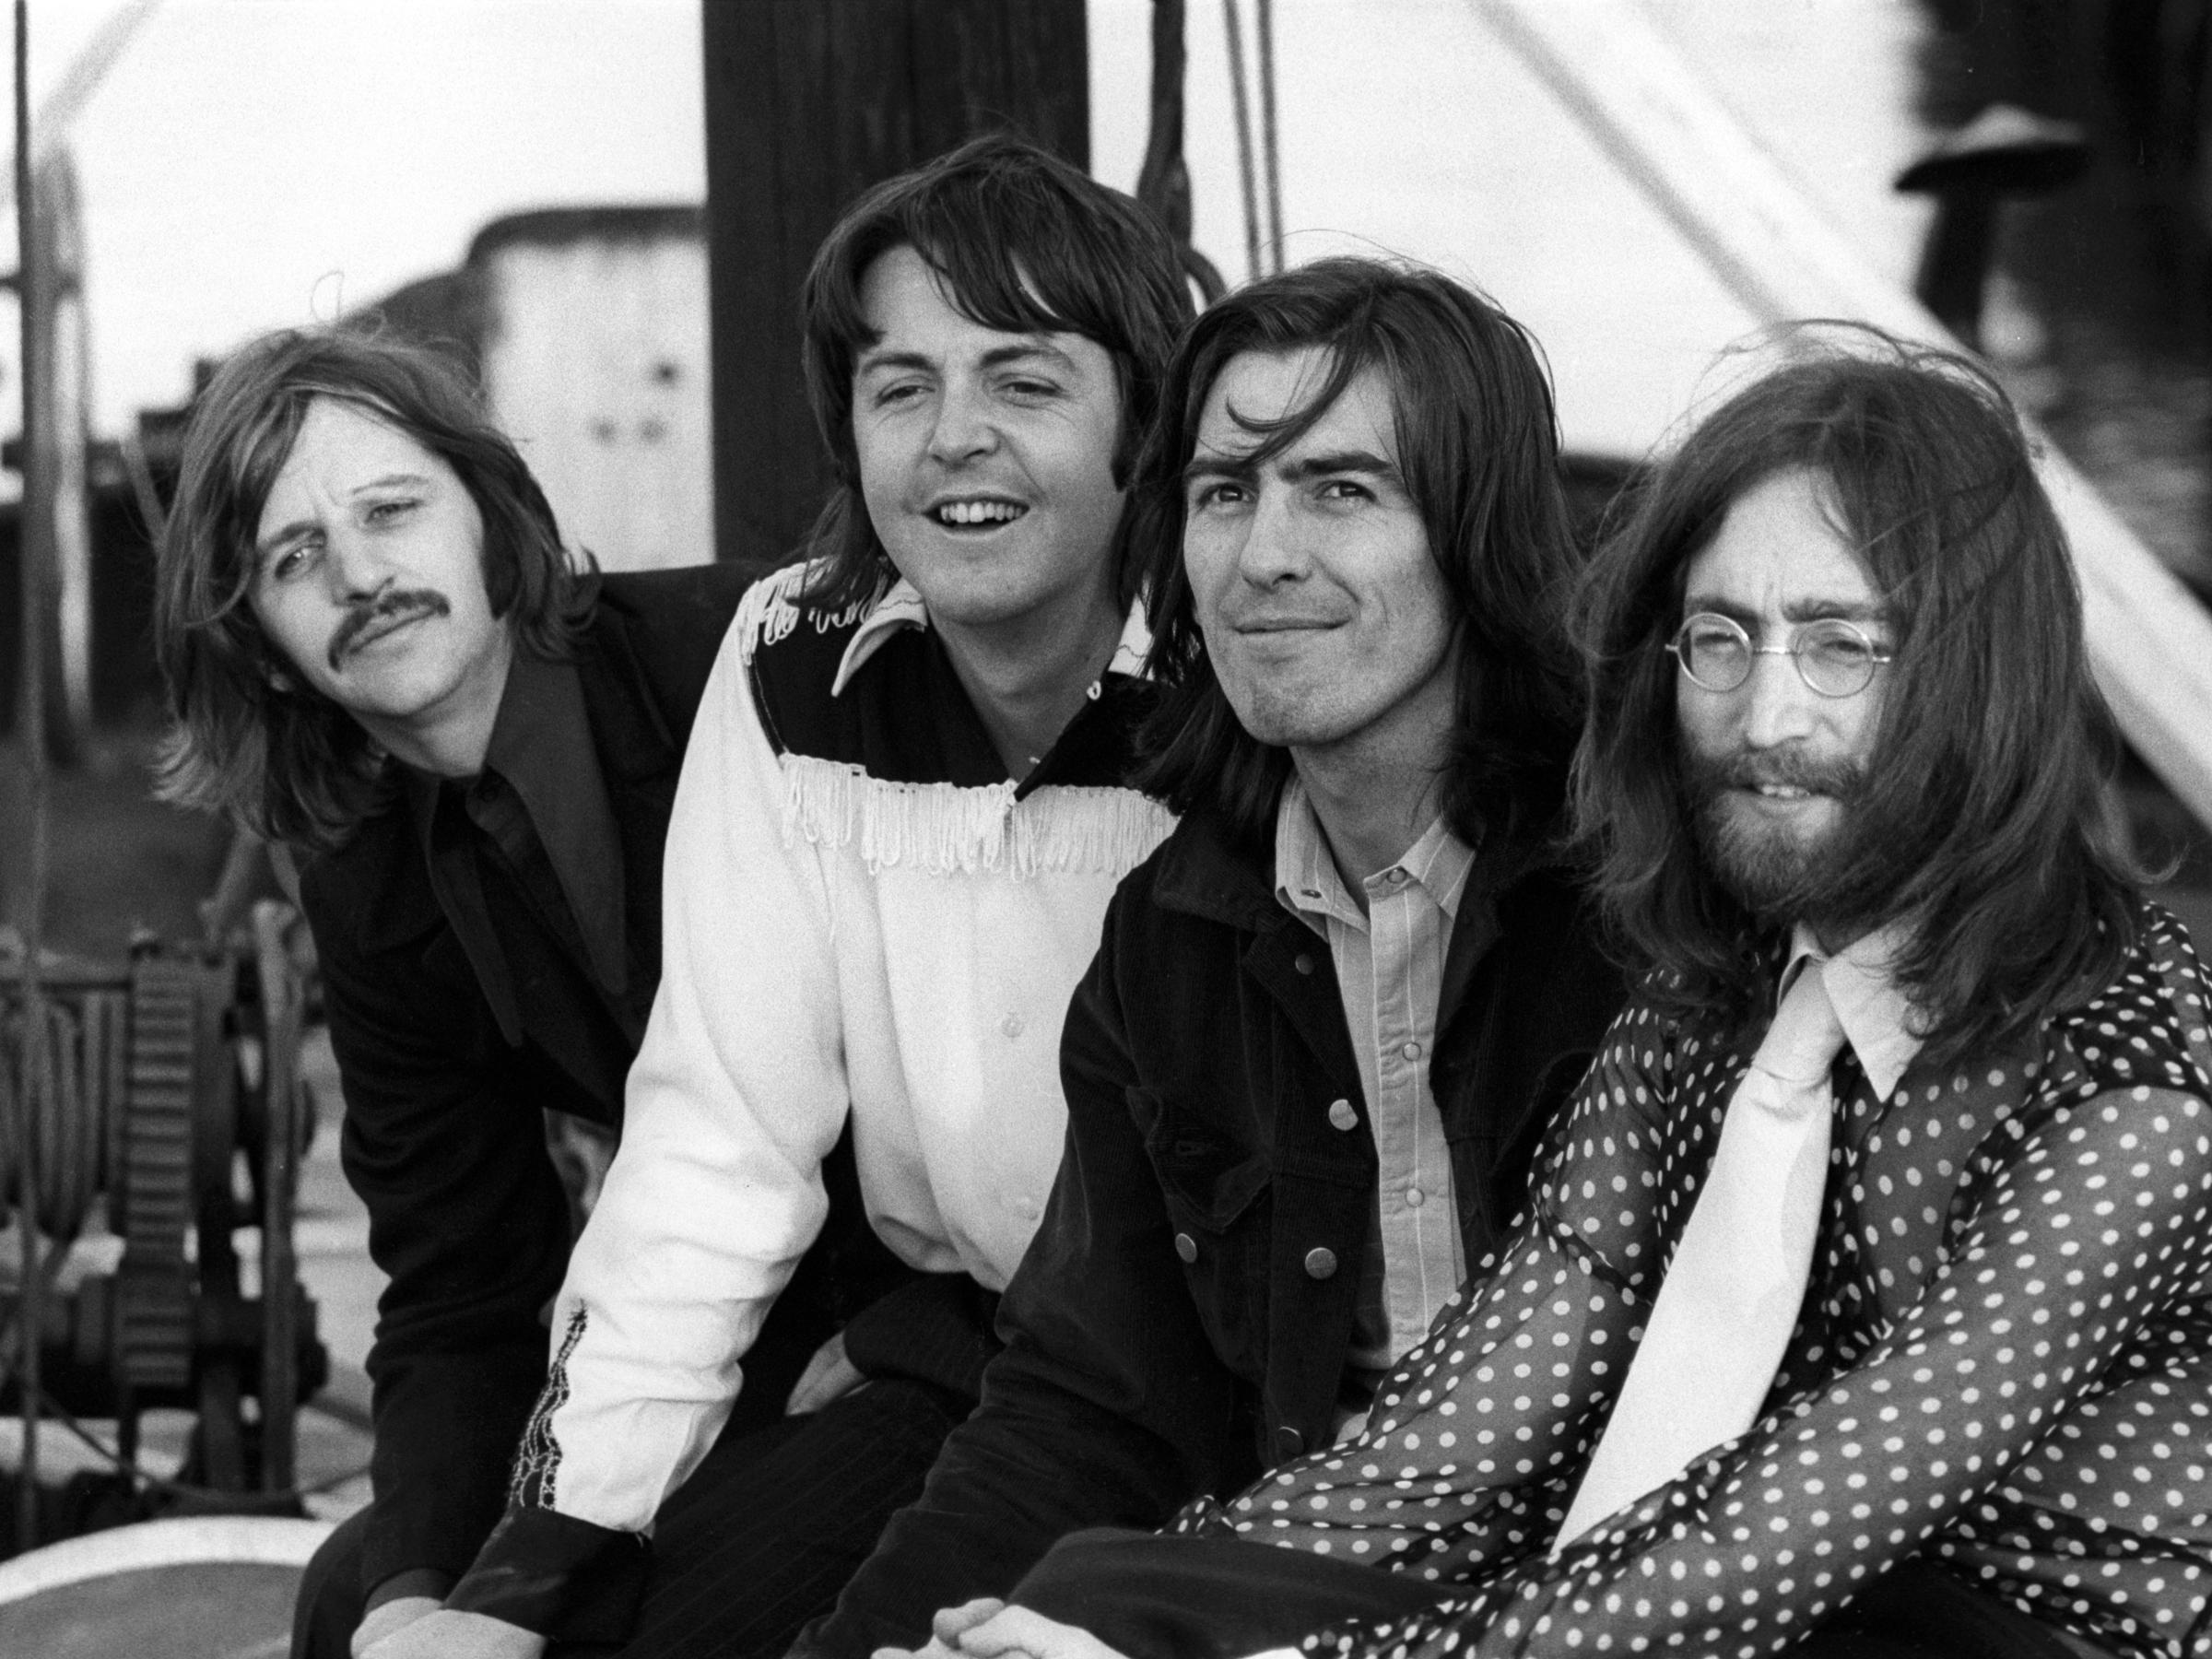 Hear An Early Outtake Of The Beatles' 'Oh! Darling' | WPRL